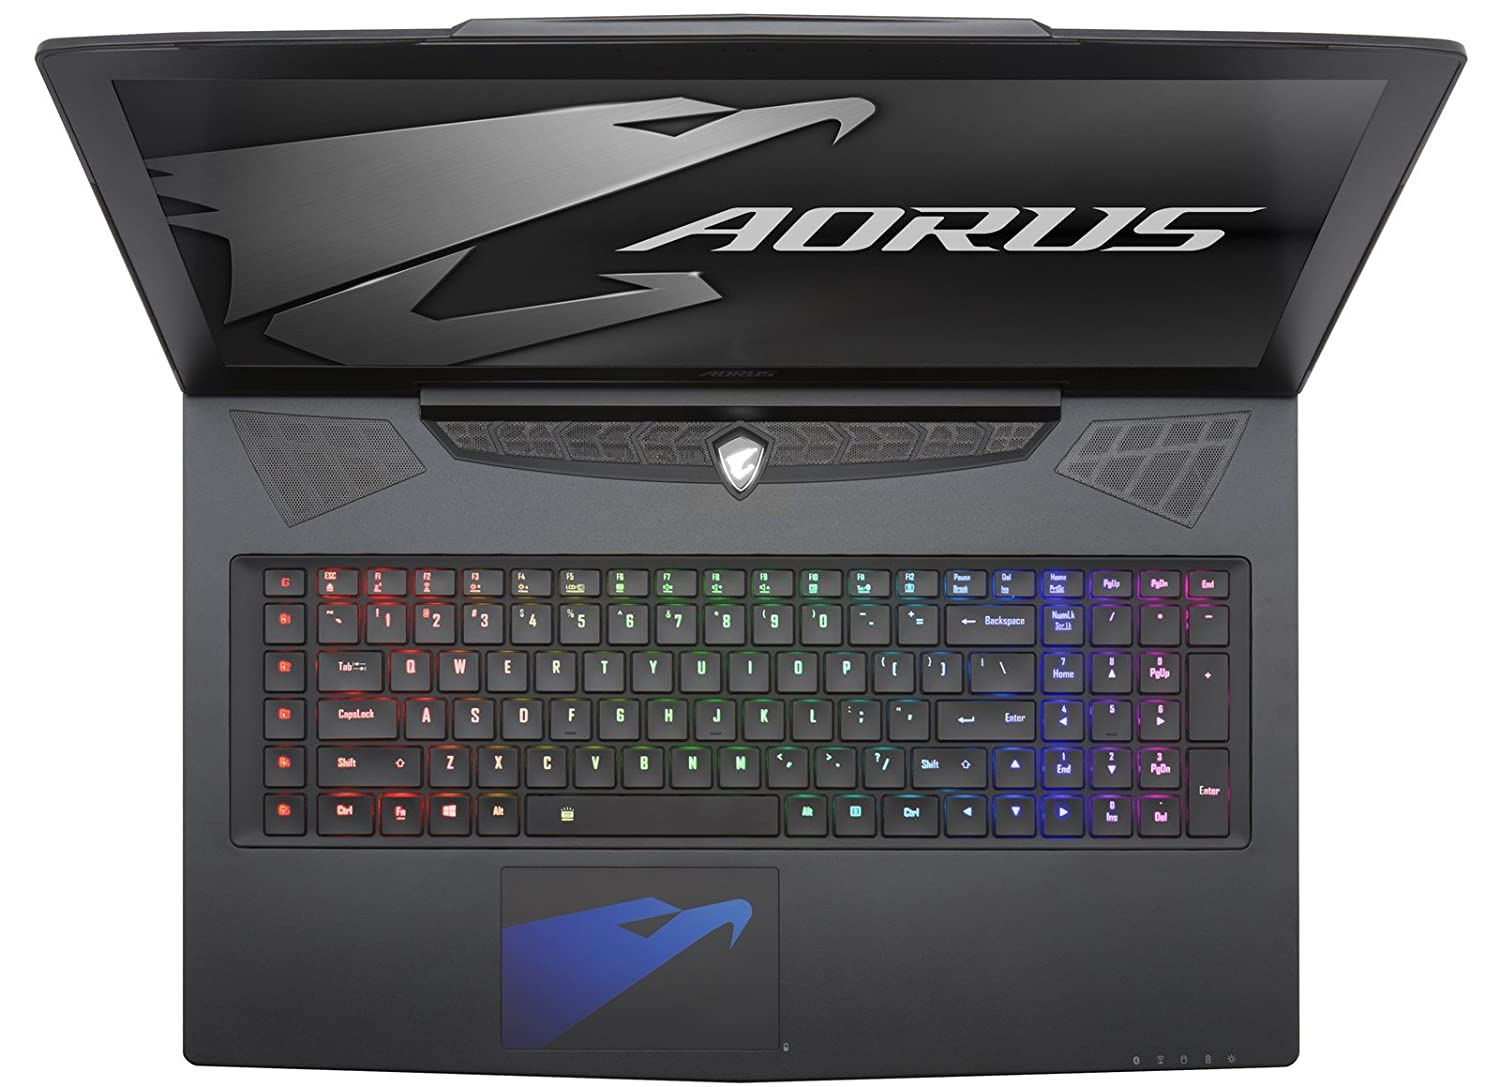 Amazon.com: AORUS X7 v6-PC3D (i7-6820HK, 16GB RAM, 2x 256GB NVMe SSD + 1TB HDD, NVIDIA GTX 1070 8GB, 17.3